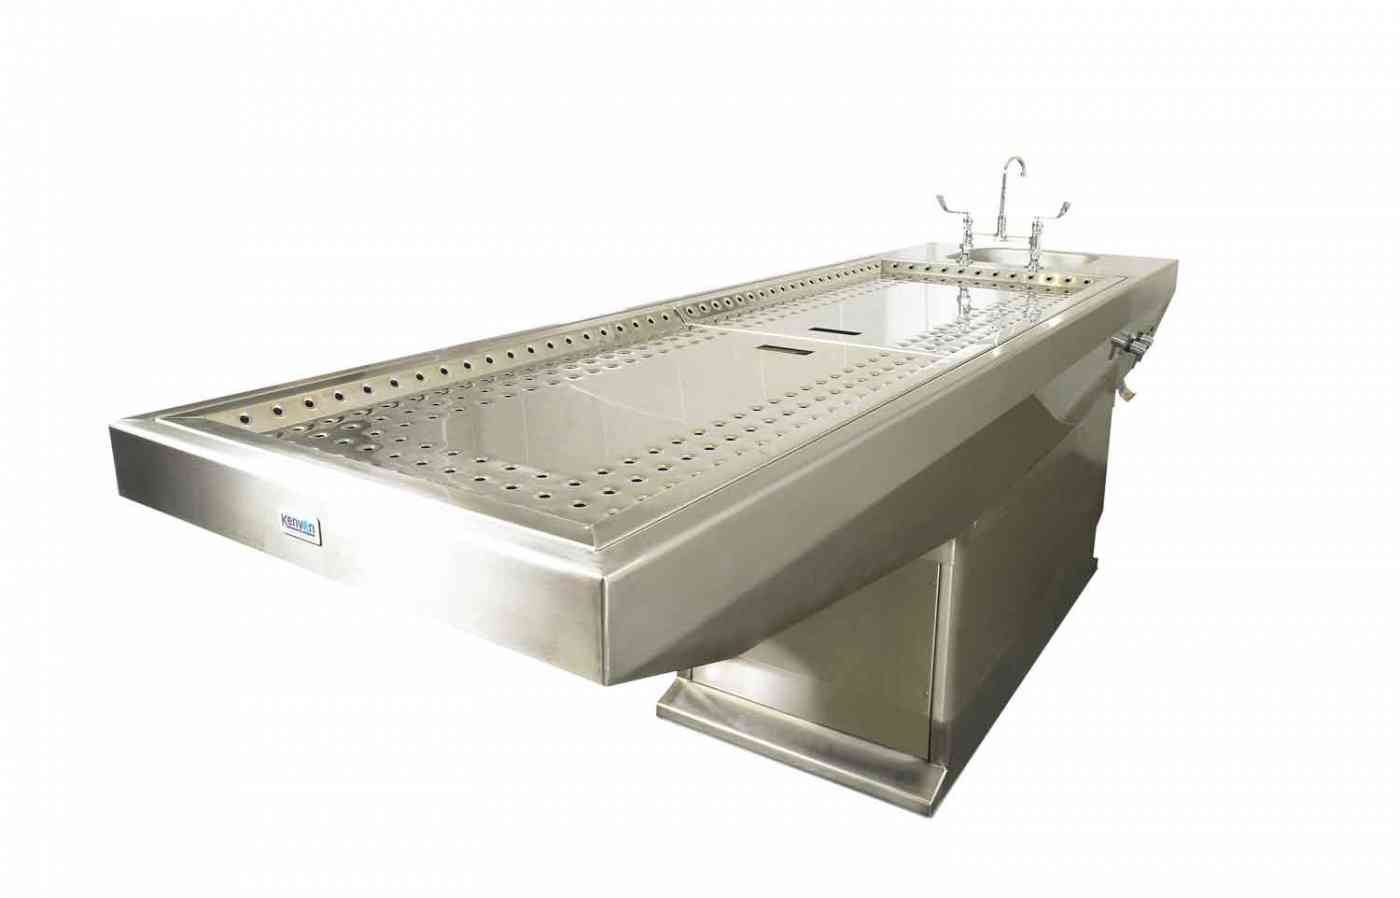 Autopsy Table with Extractor, Mortuary, Post Mortem, Funeral Equipment by WJ Kenyon